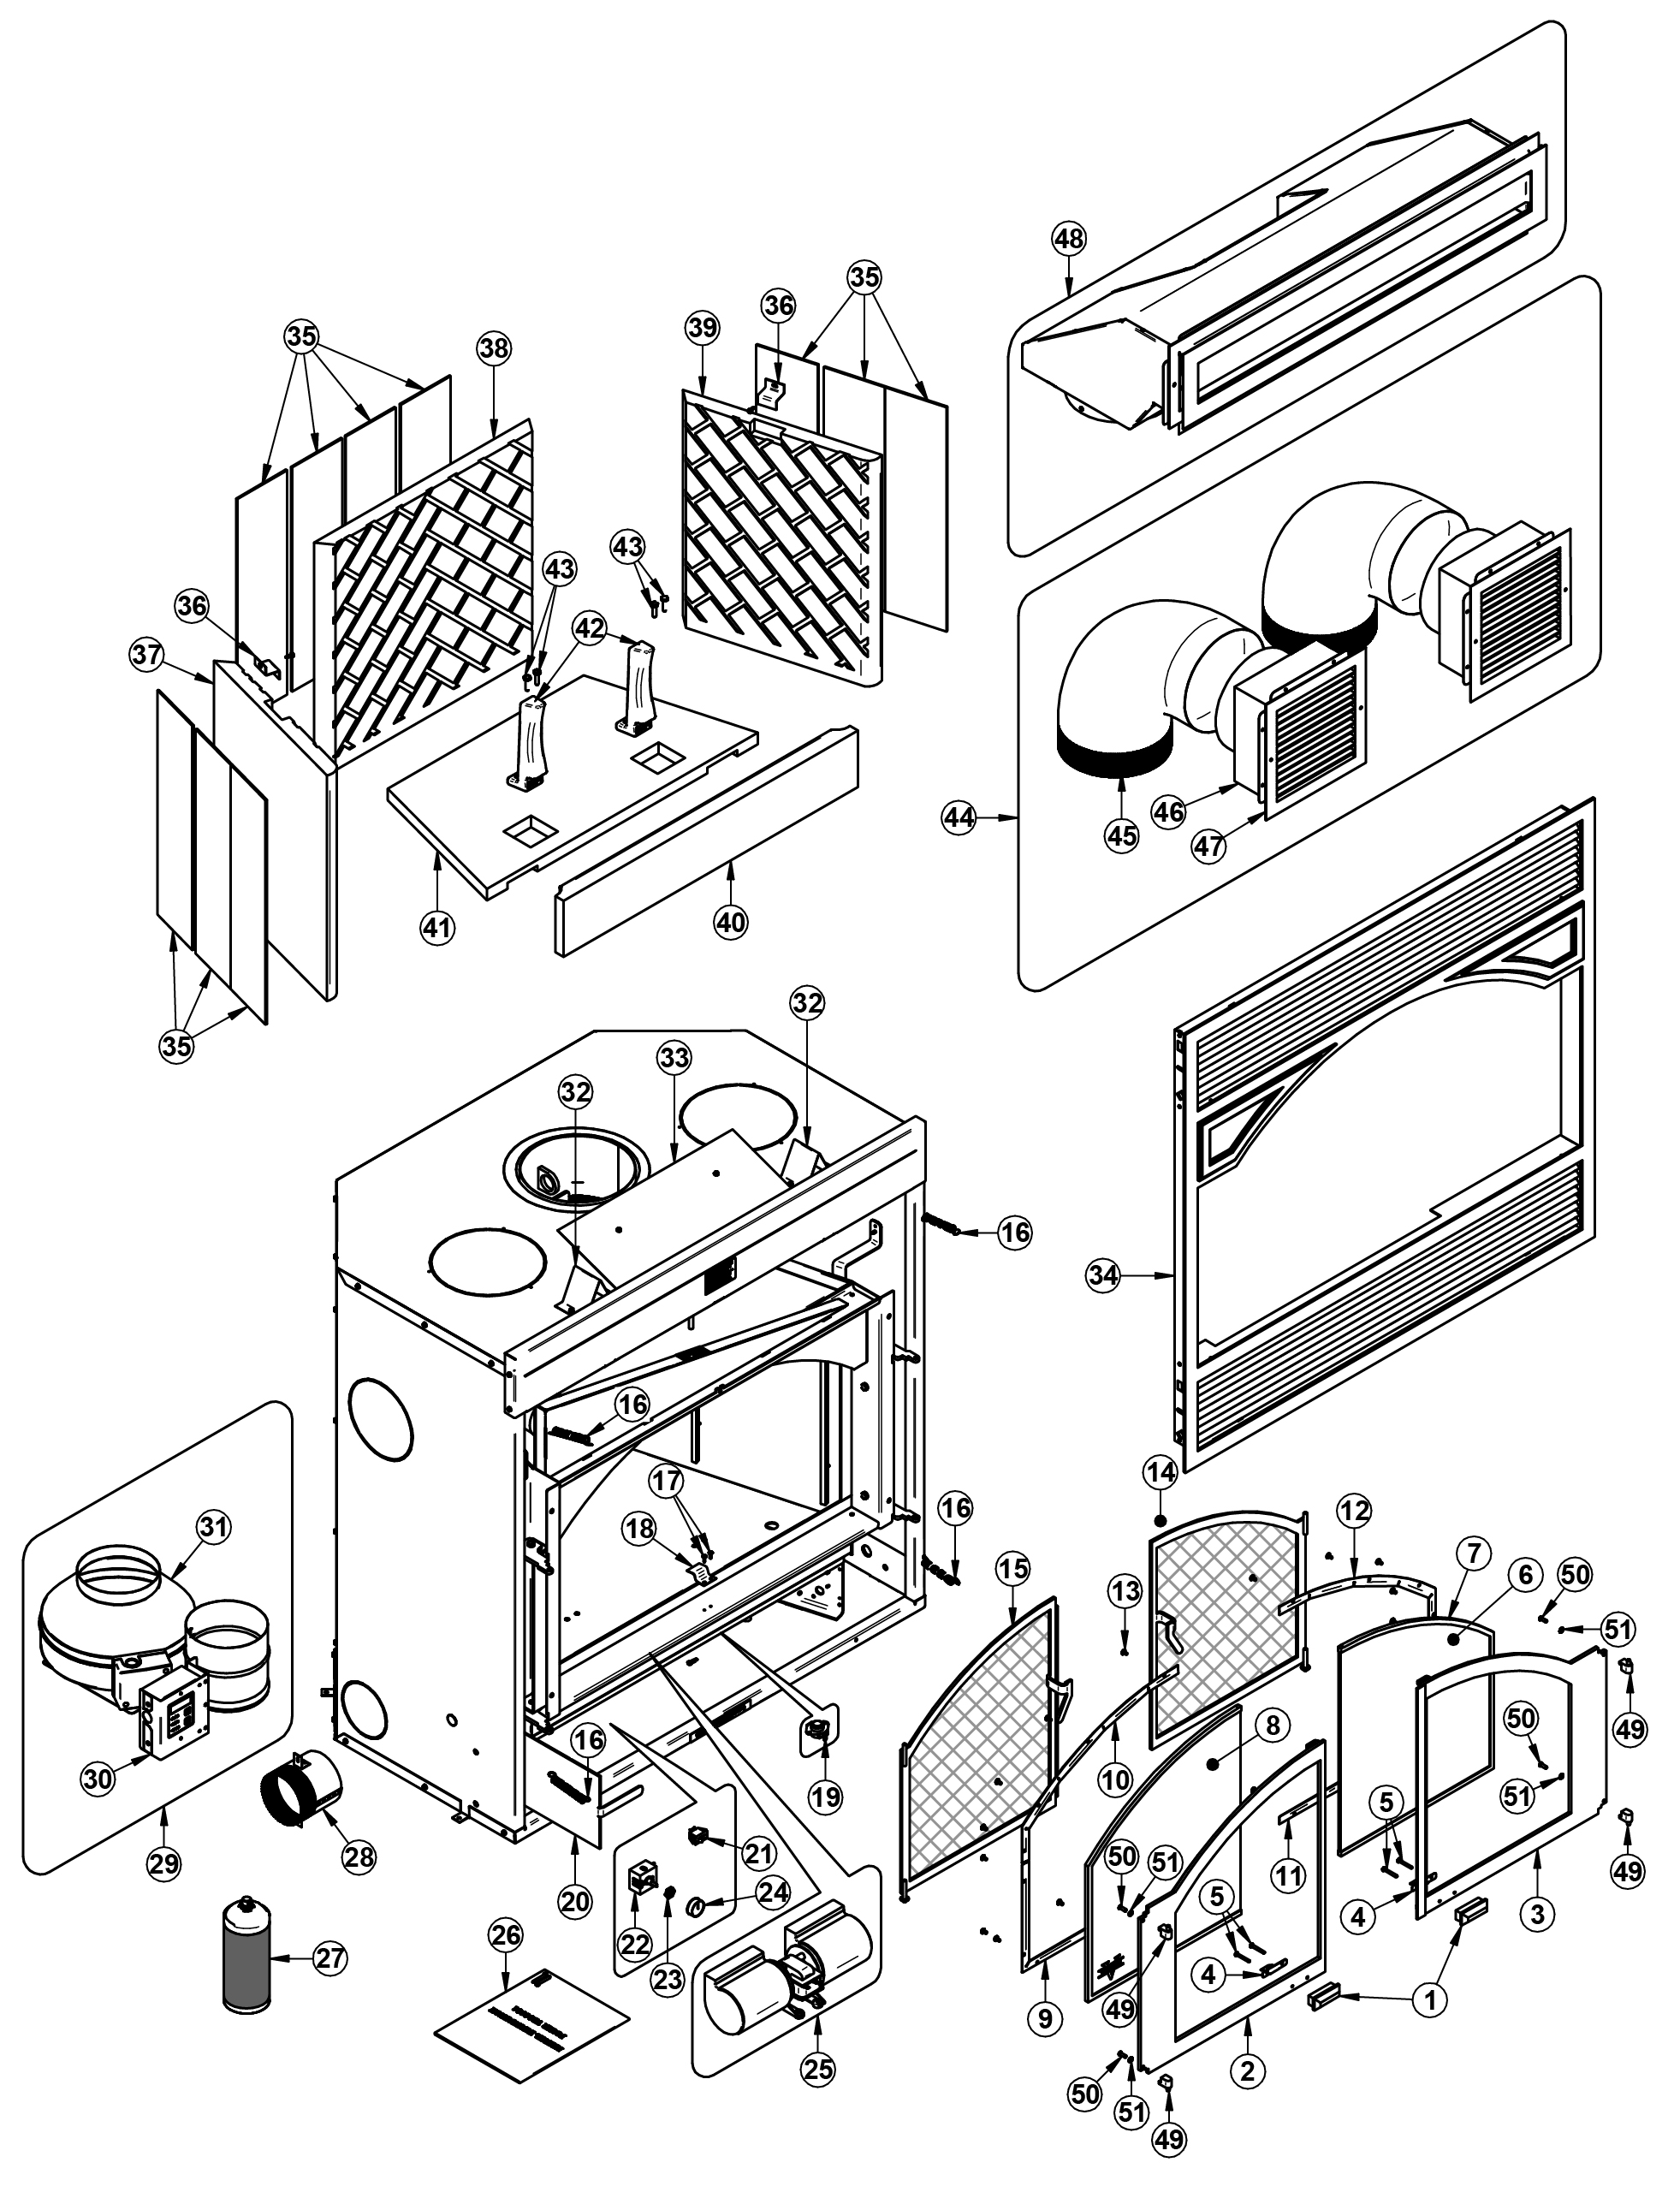 hight resolution of exploded view drawing and parts list me300 ventis wood fireplace